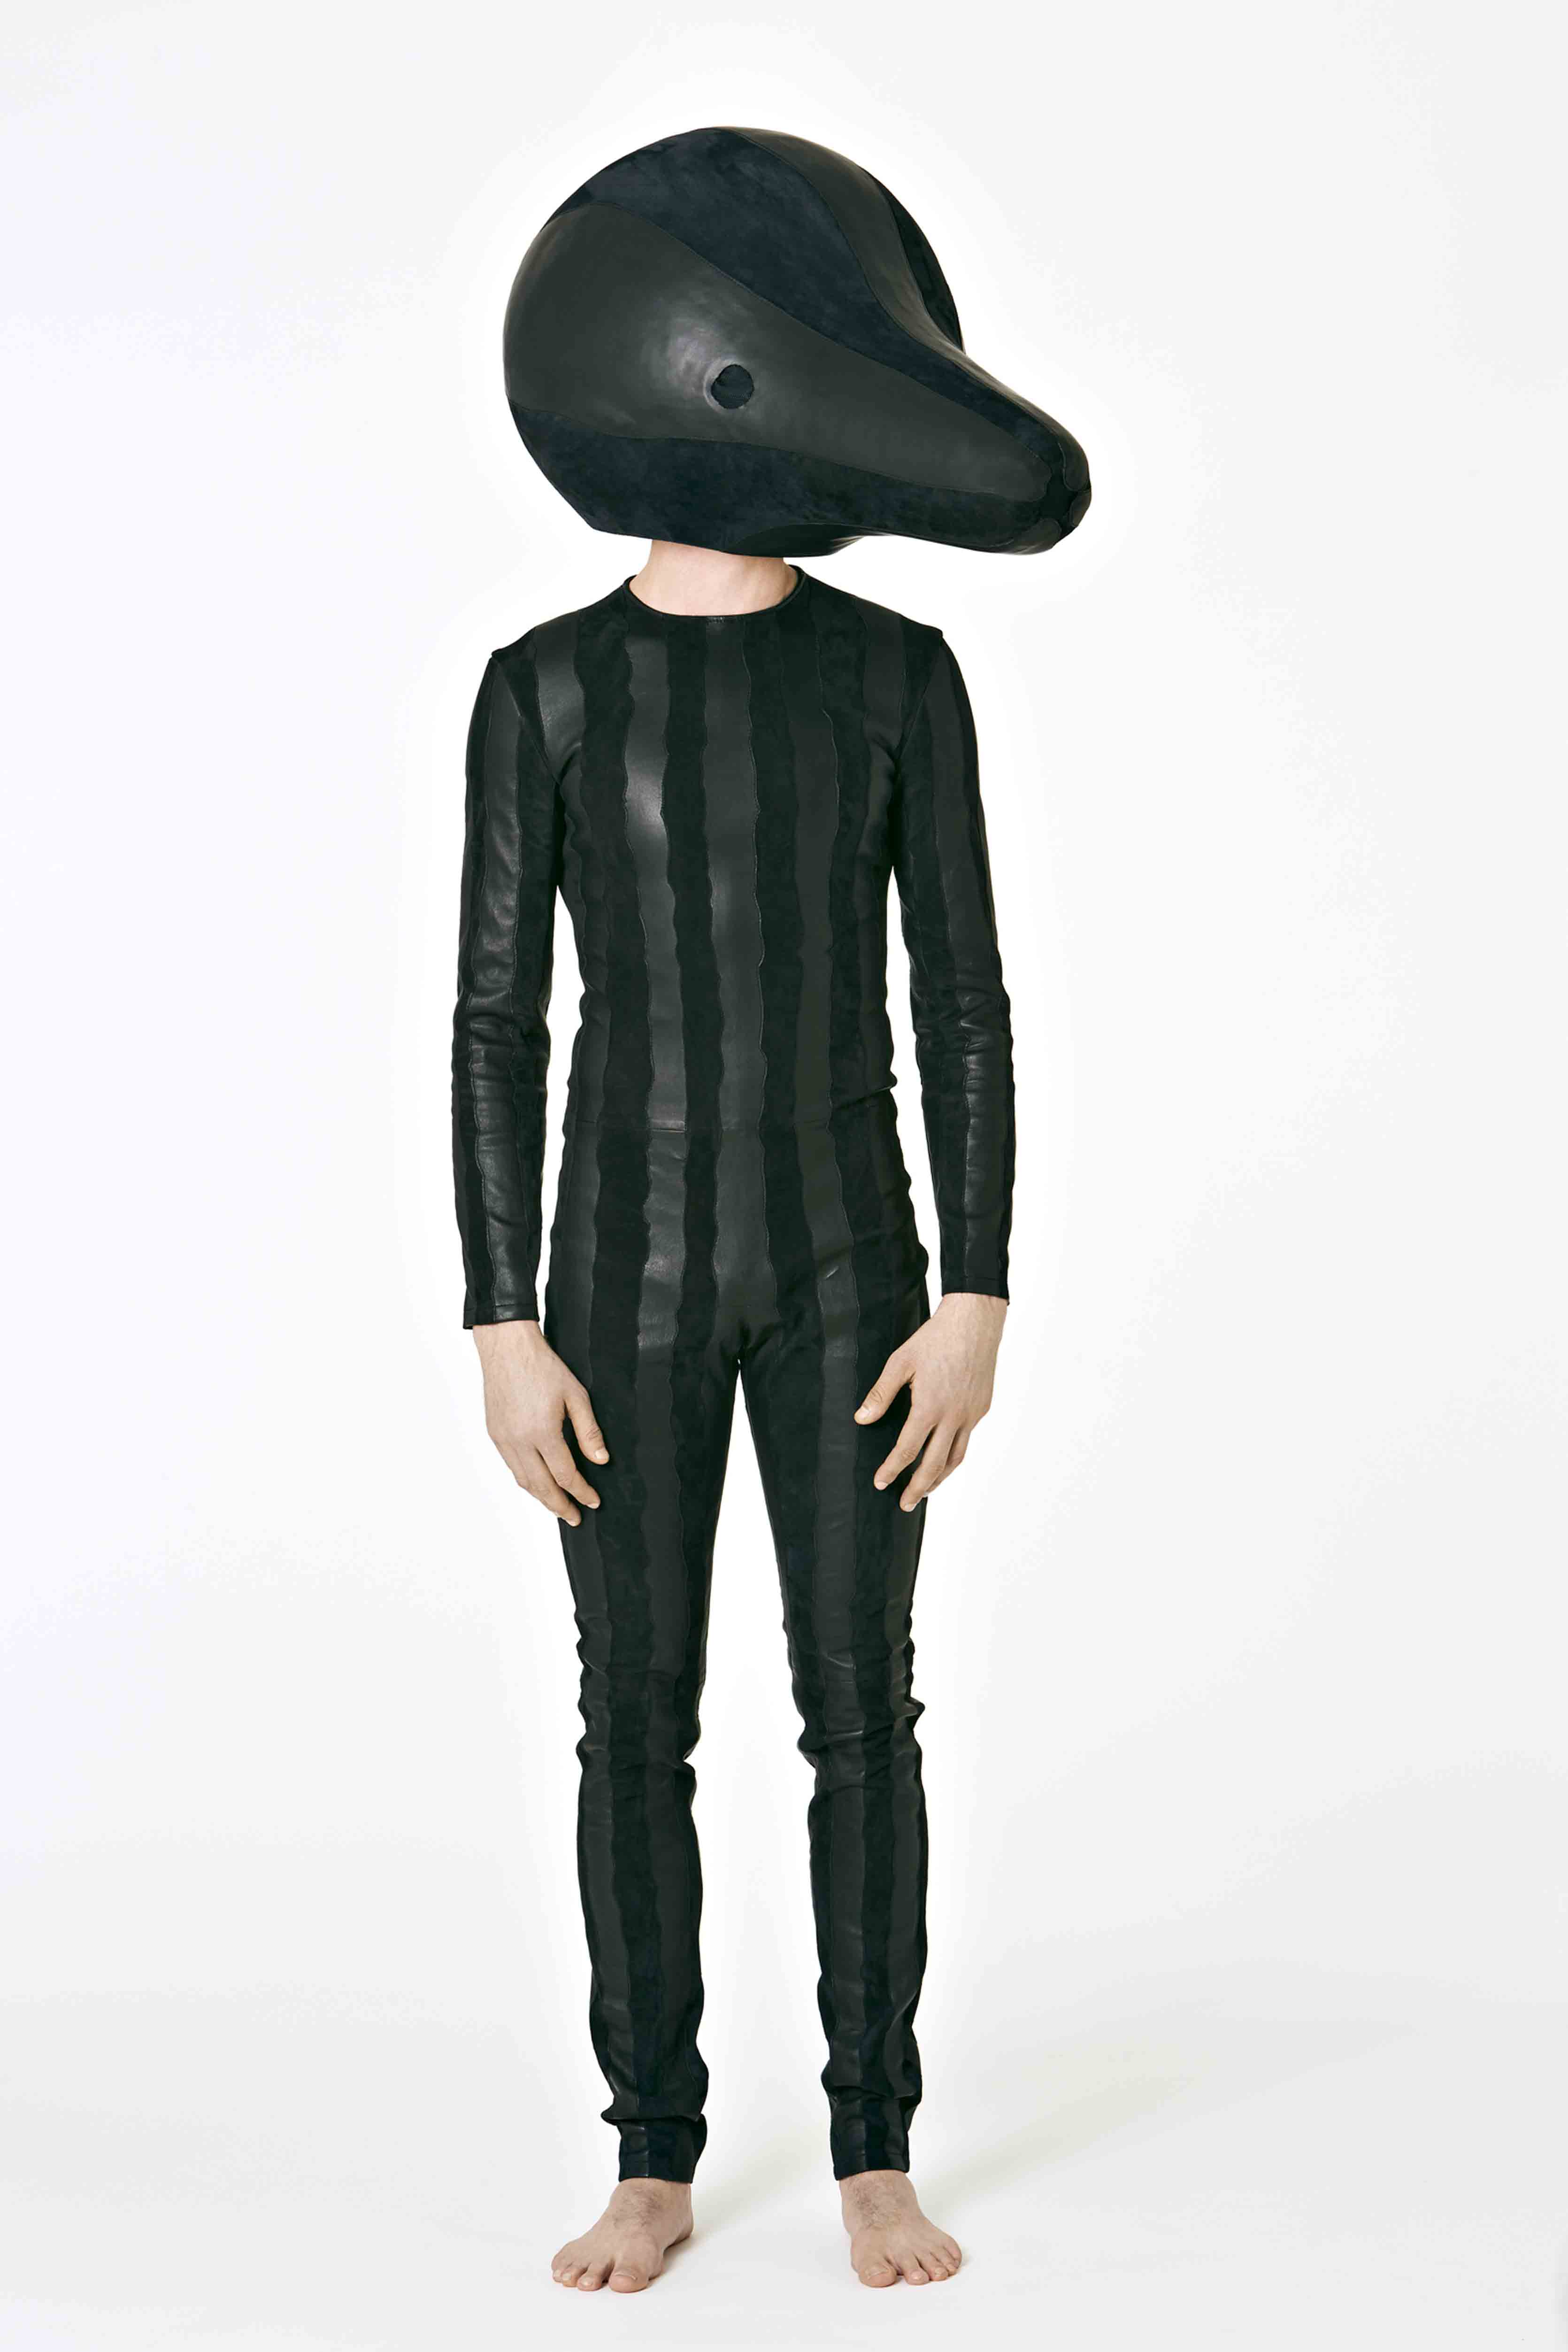 Loewe - Fiber glass head covered in black lamb suede and black strech napa. Tracksuit in black lamb suede and black stretch napa.